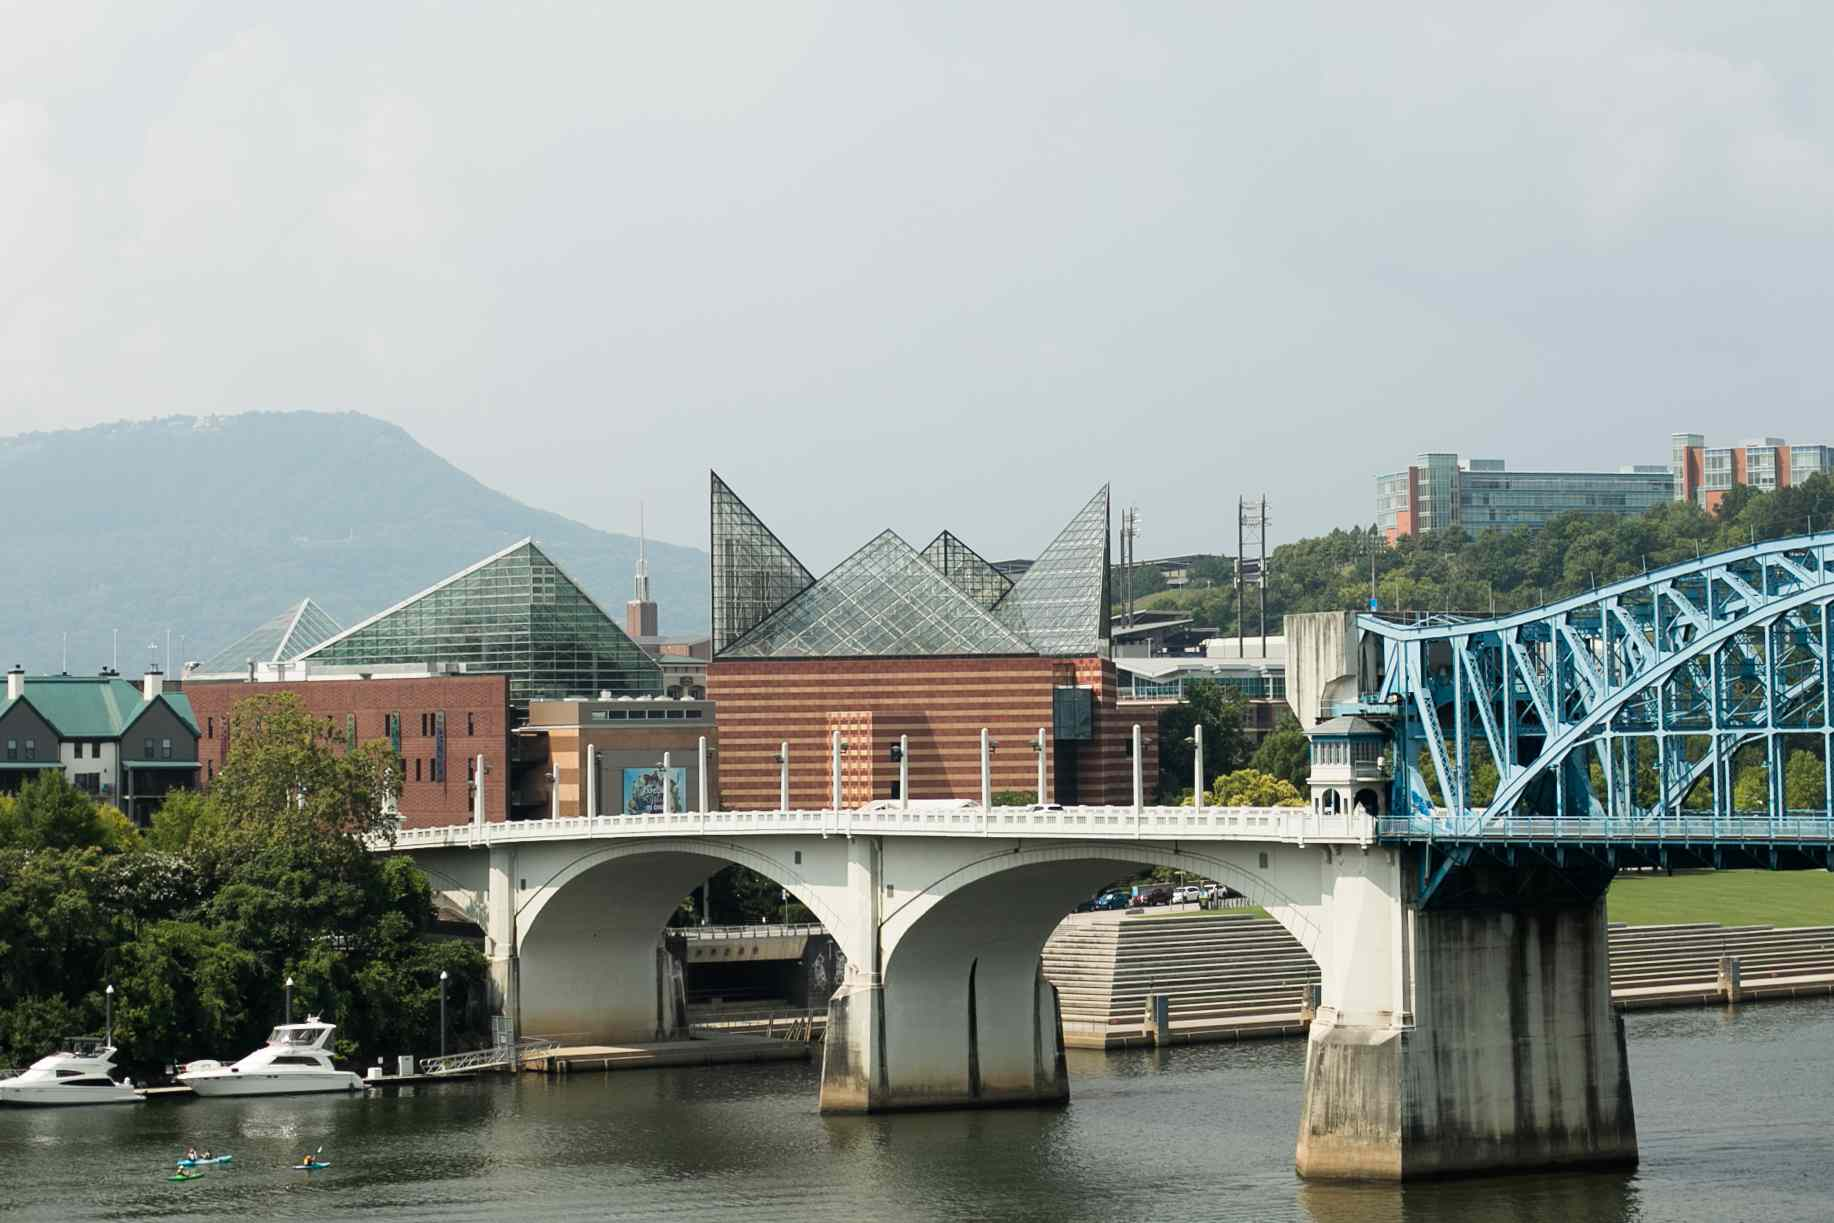 View of the Tennessee Aquarium from on the river